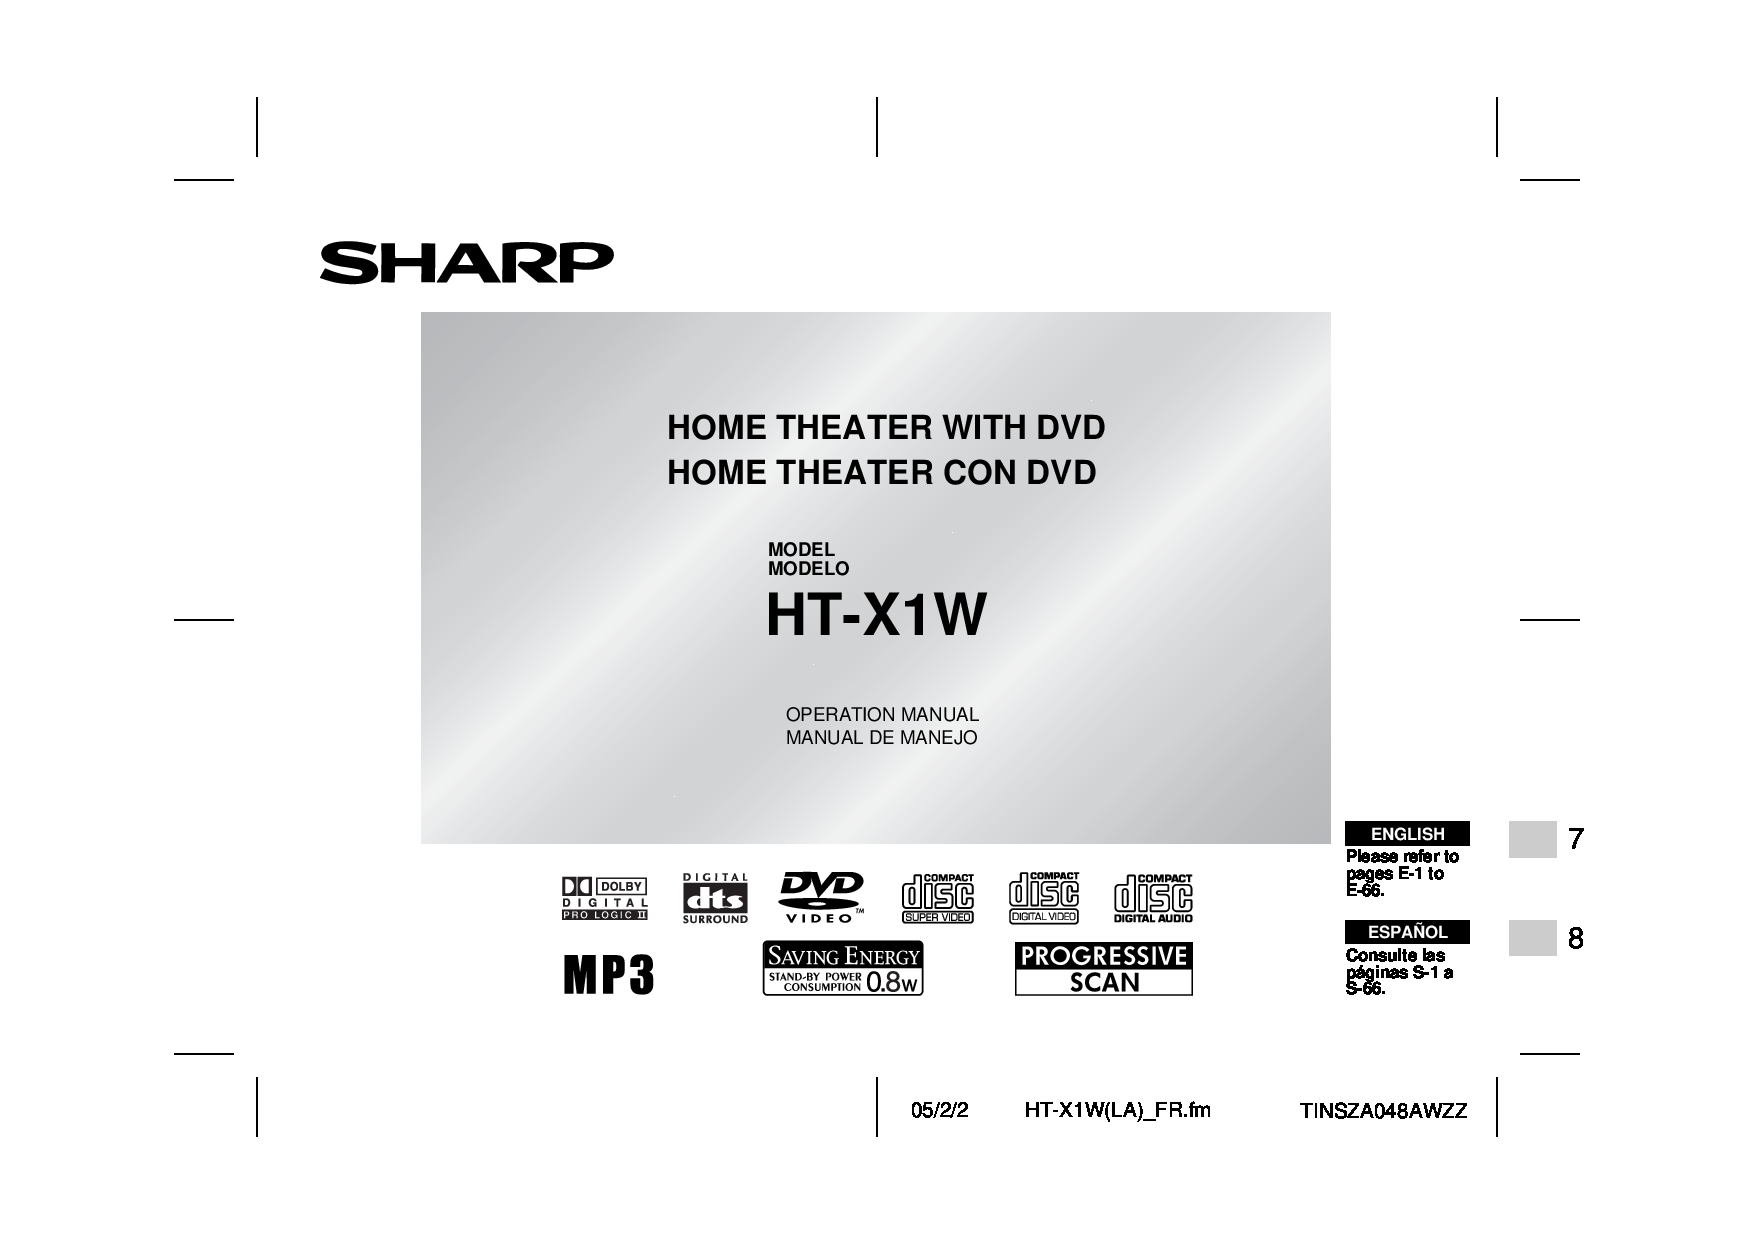 Sharp HT-X1W Operation Manual